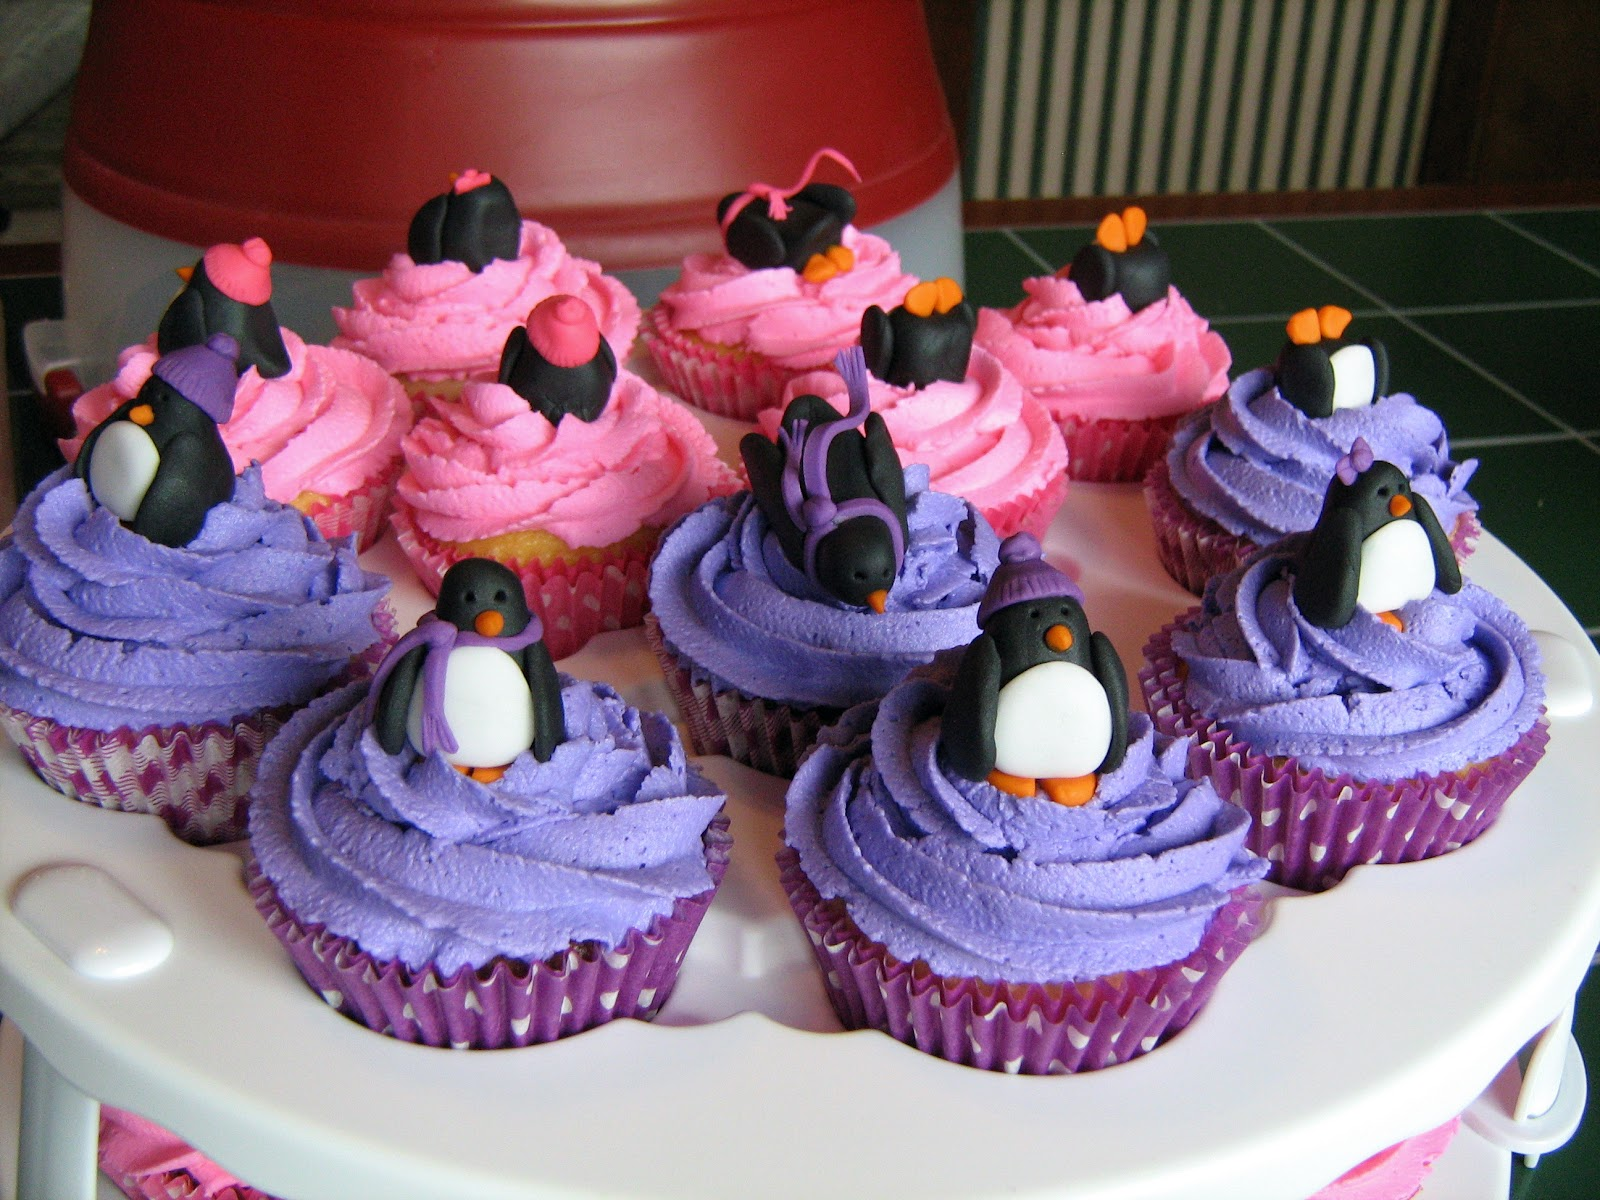 fowl single file penguin goodies in pink and purple